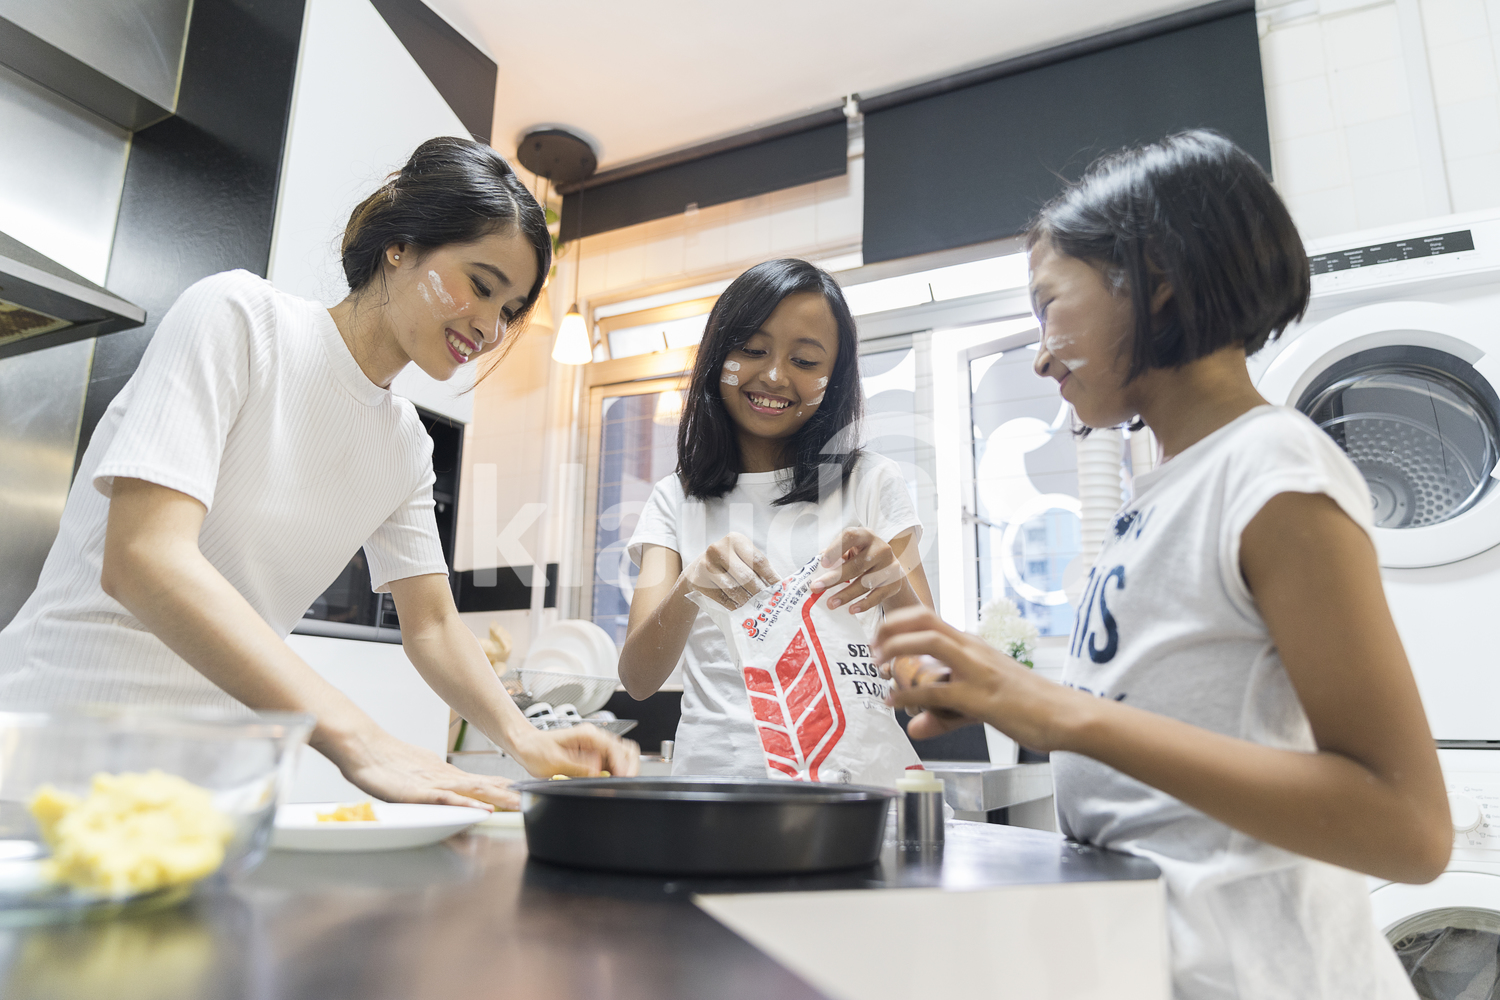 Mother and her daughters having fun during baking for Hari Raya